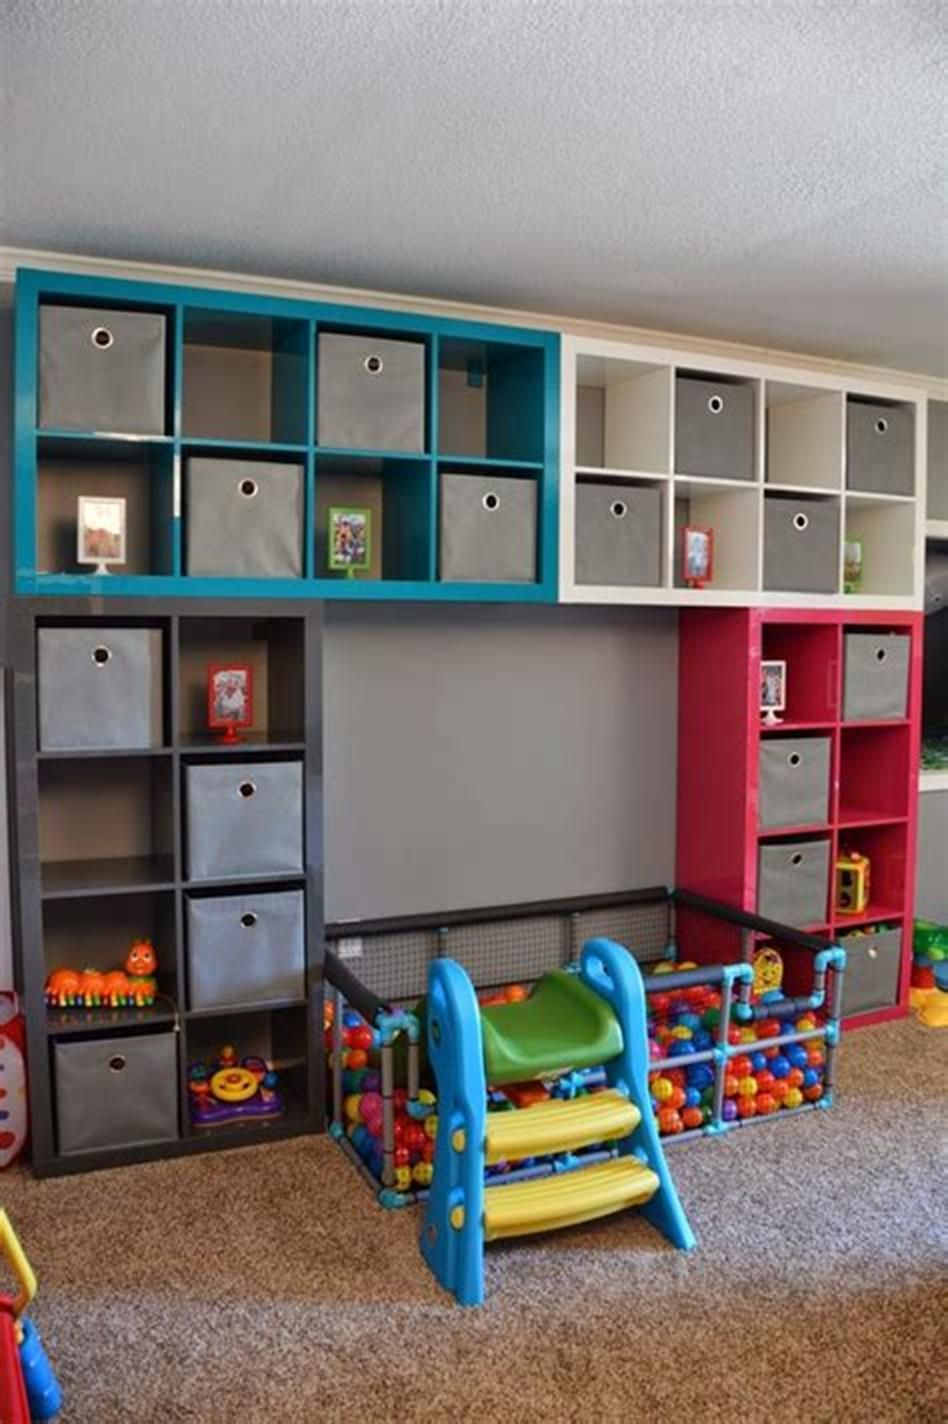 30+ Best Cheap IKEA Kids Playroom Ideas for 2019 images